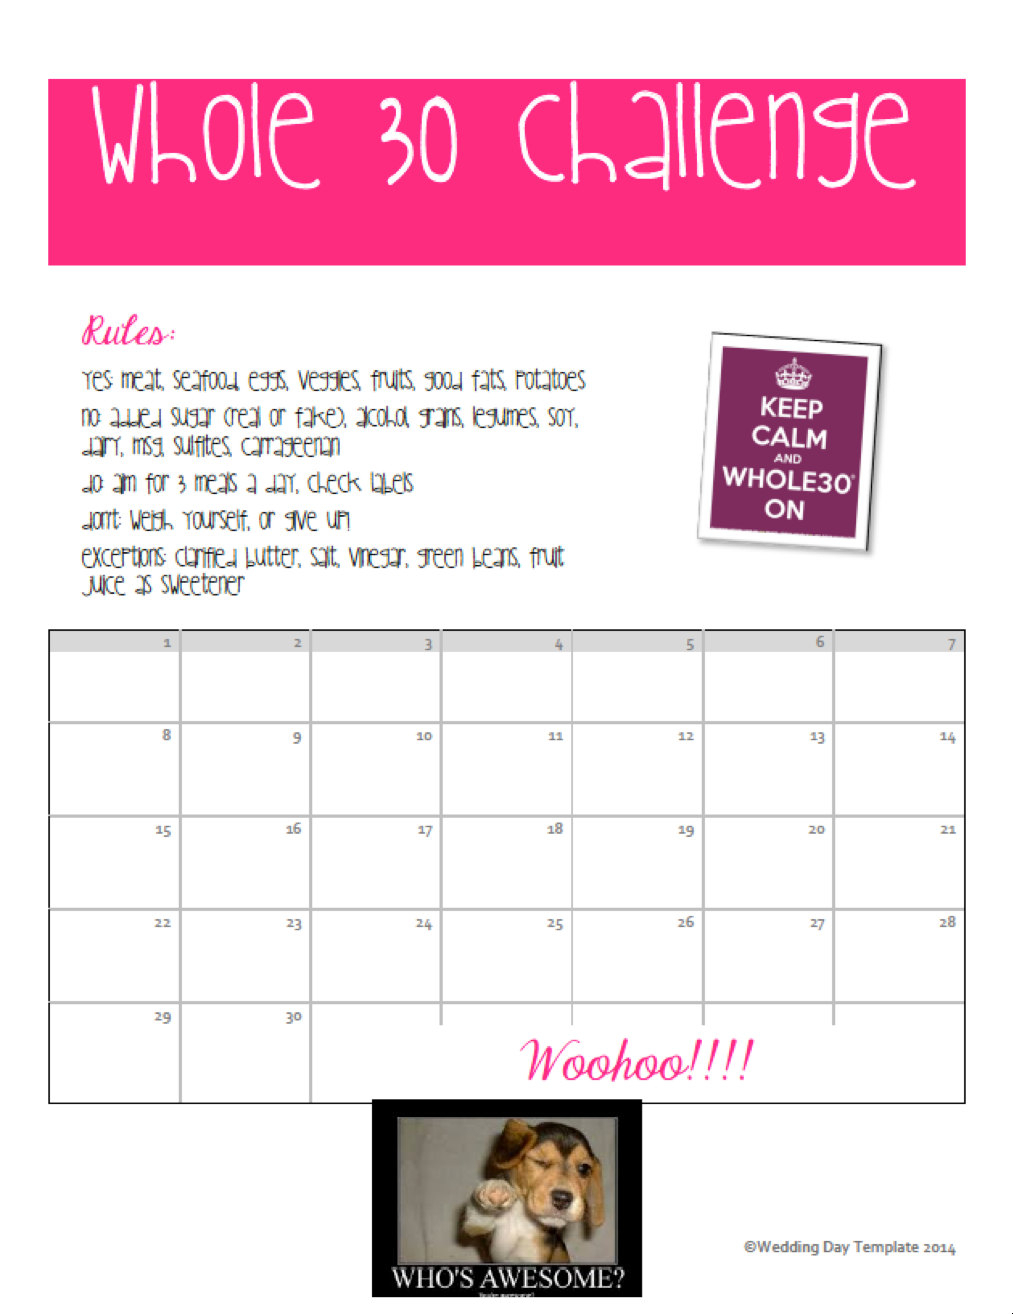 Printable Whole 30 Challenge Calendar By Weddingdaytemplate in 30 Day Calendar Template